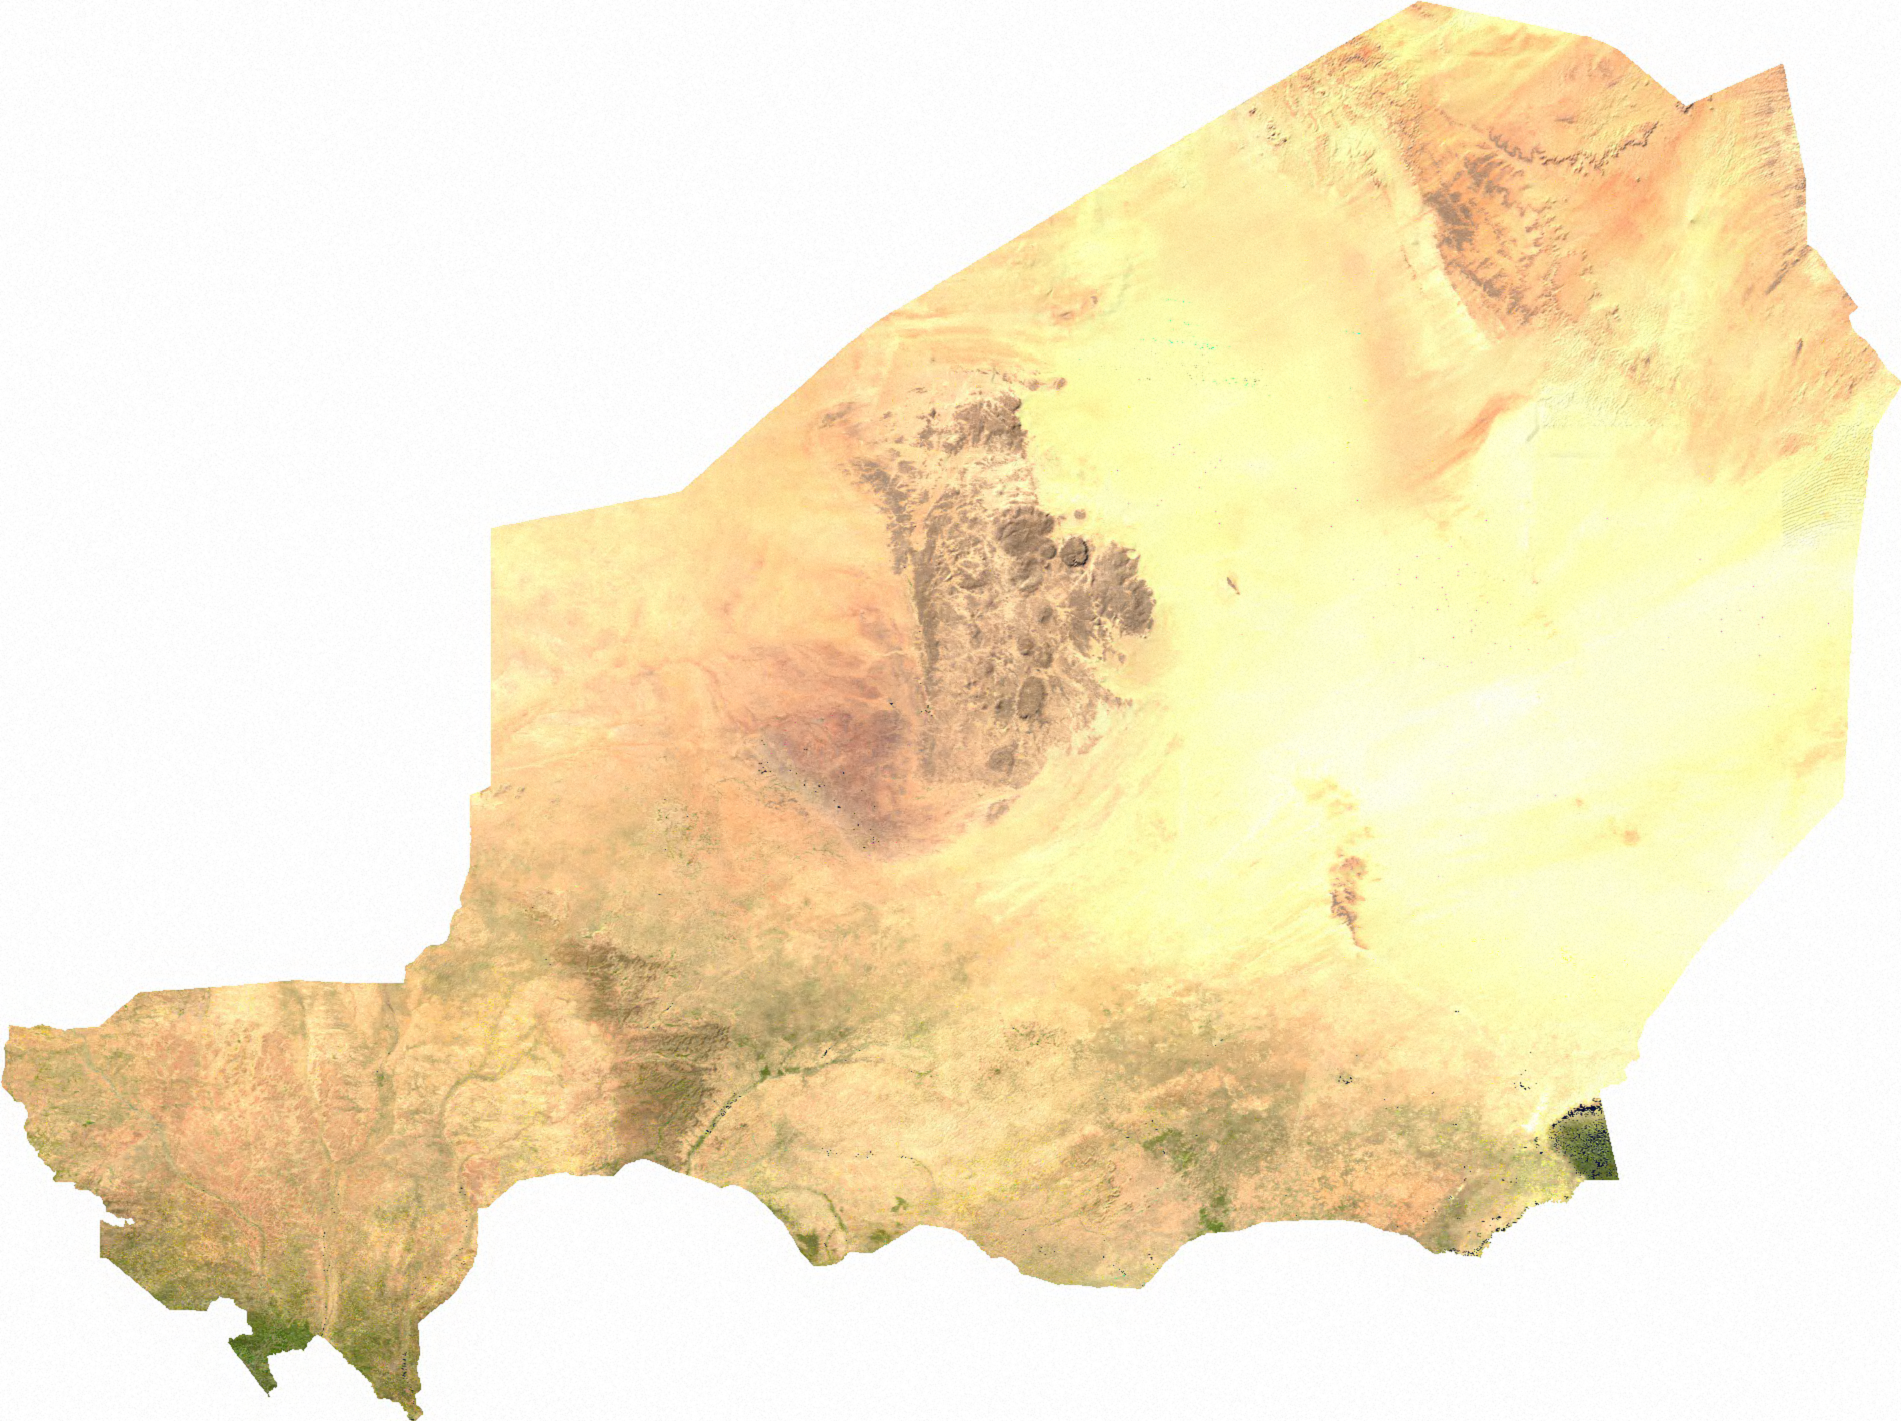 http://upload.wikimedia.org/wikipedia/commons/d/d2/Niger_sat.png